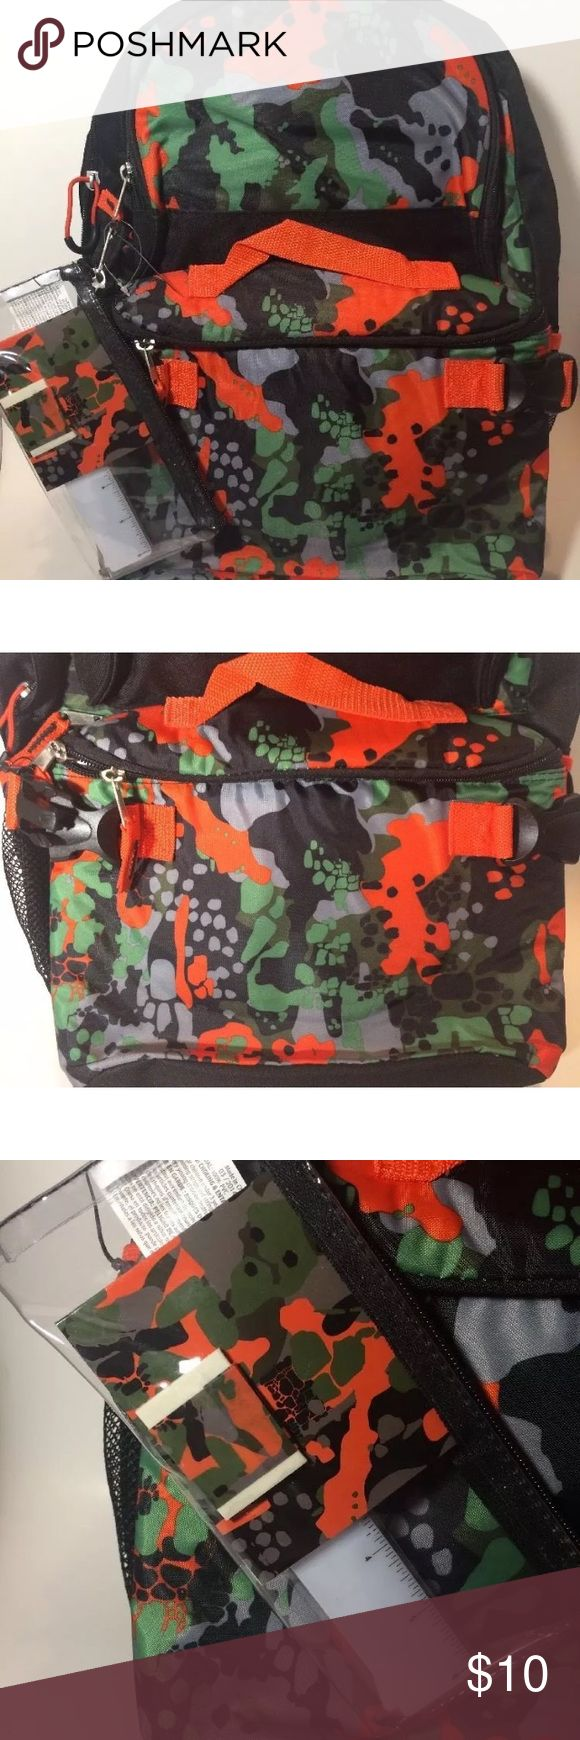 """Camo Backpack With Matching Lunchbox & Pencil Case Triple Pocket 17"""" Rainforest Camo Print Backpack with Pencil Case and Lunch Bag   It is unused but has some wear from storage. Accessories Bags"""